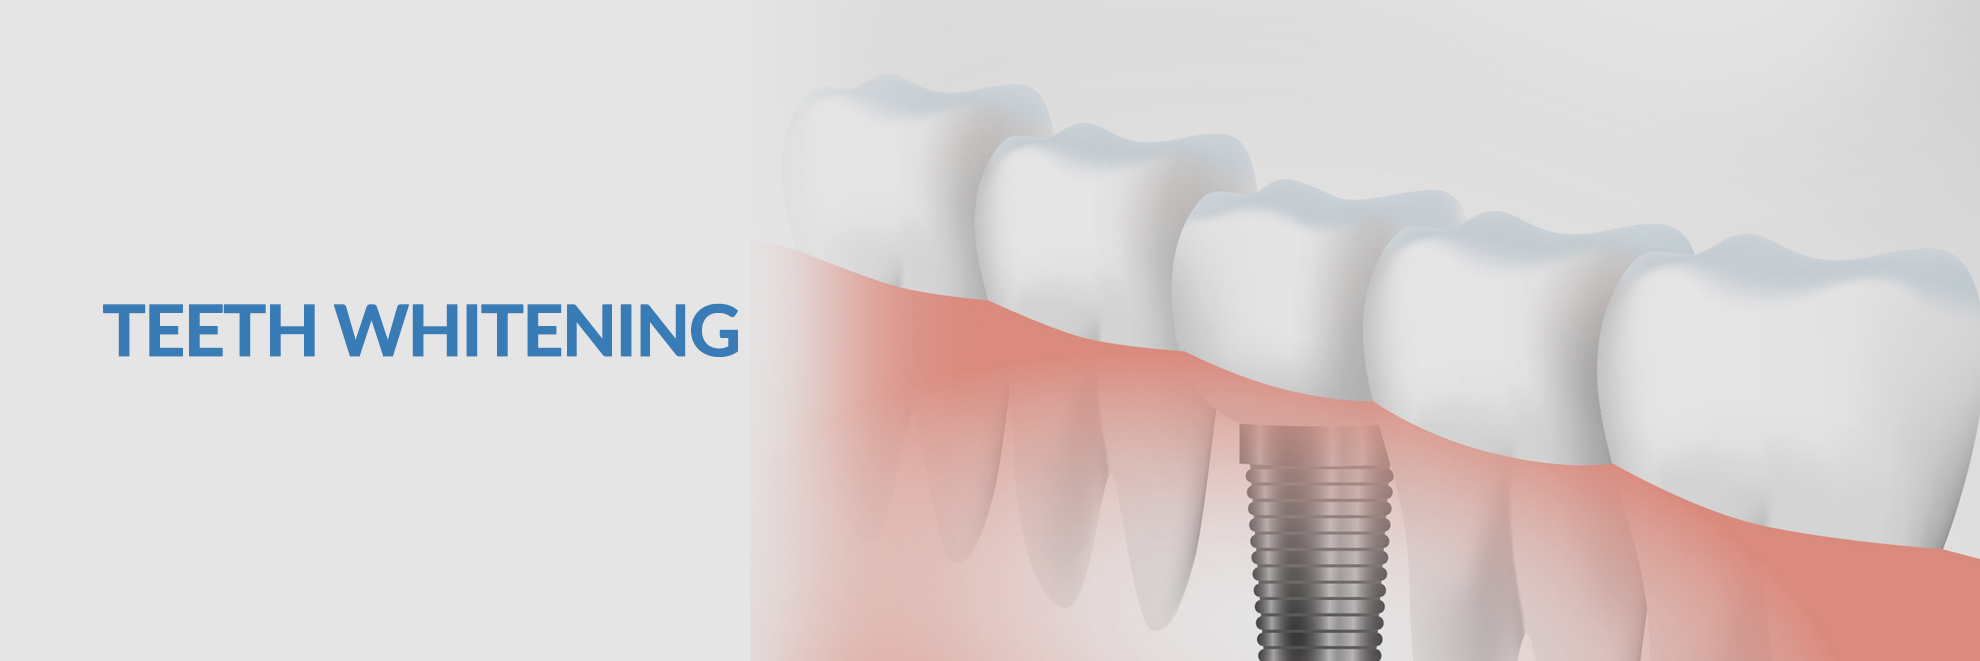 Teeth Whitening Srilanka Teeth Cleaning In Colombo